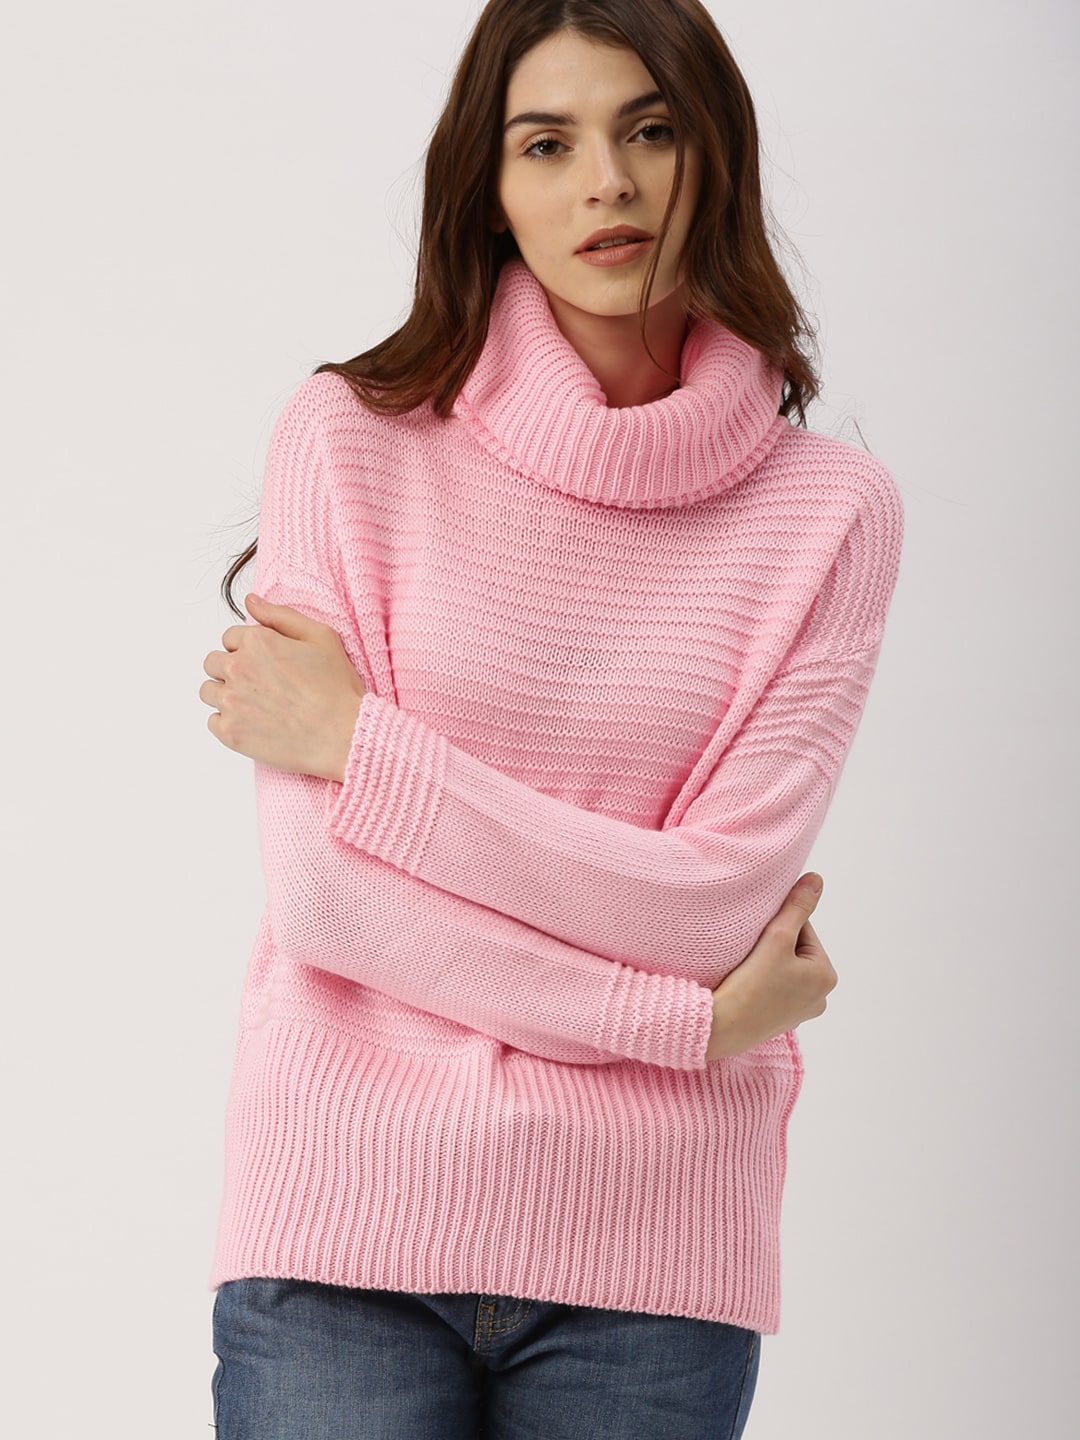 Turtle Sweaters - Buy Turtle Sweaters Online in India d84e21910